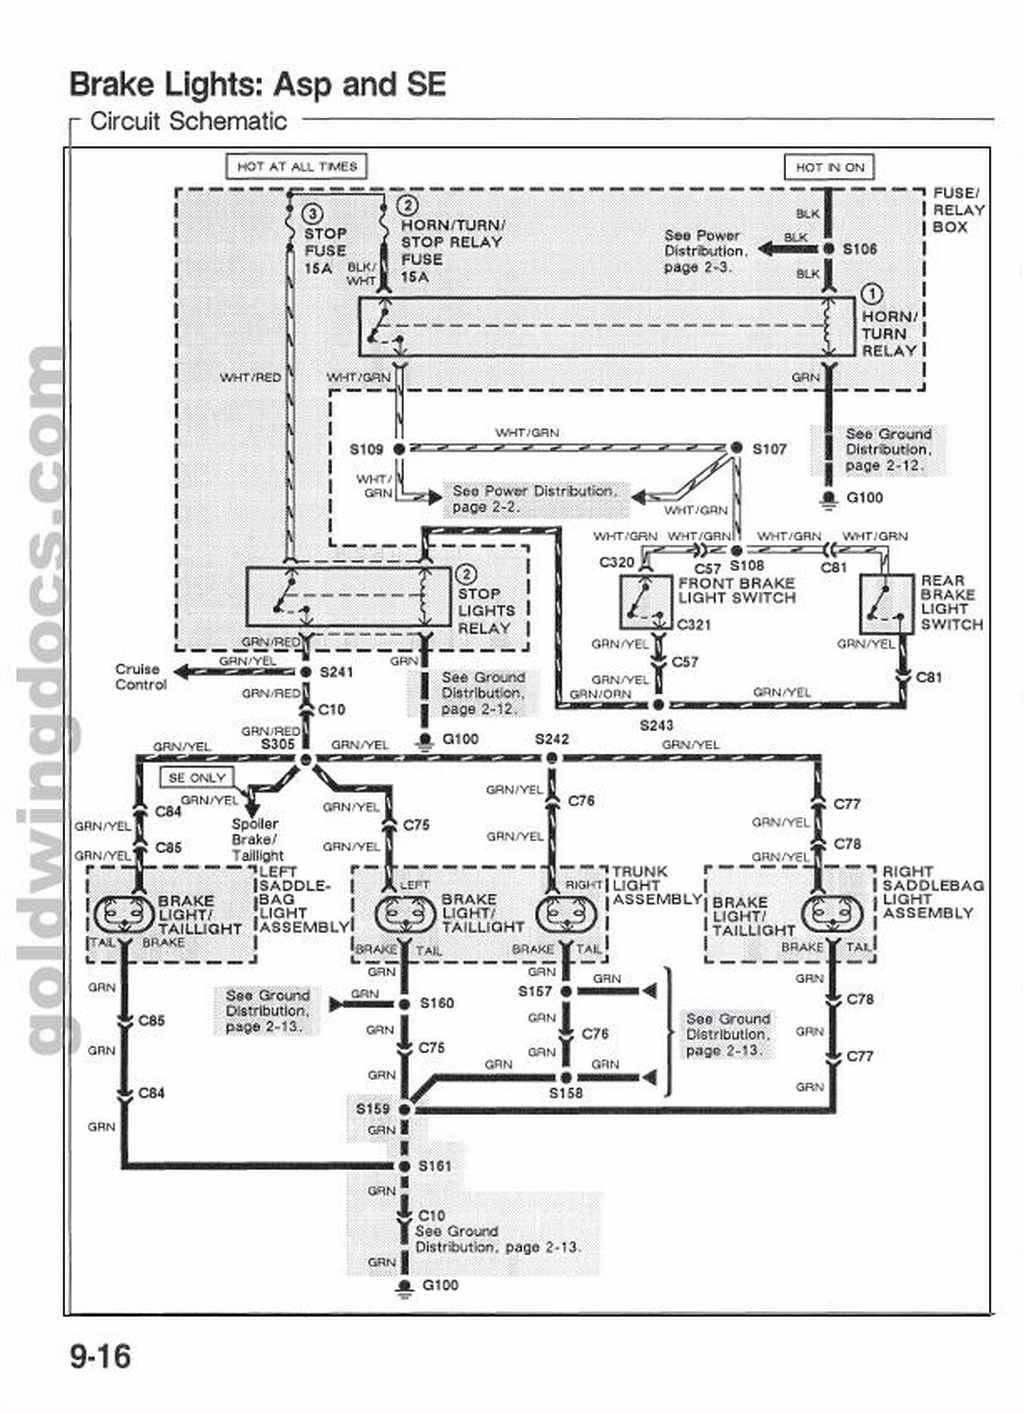 honda goldwing wiring diagram also honda goldwing 1500 wiring rh autonomia co